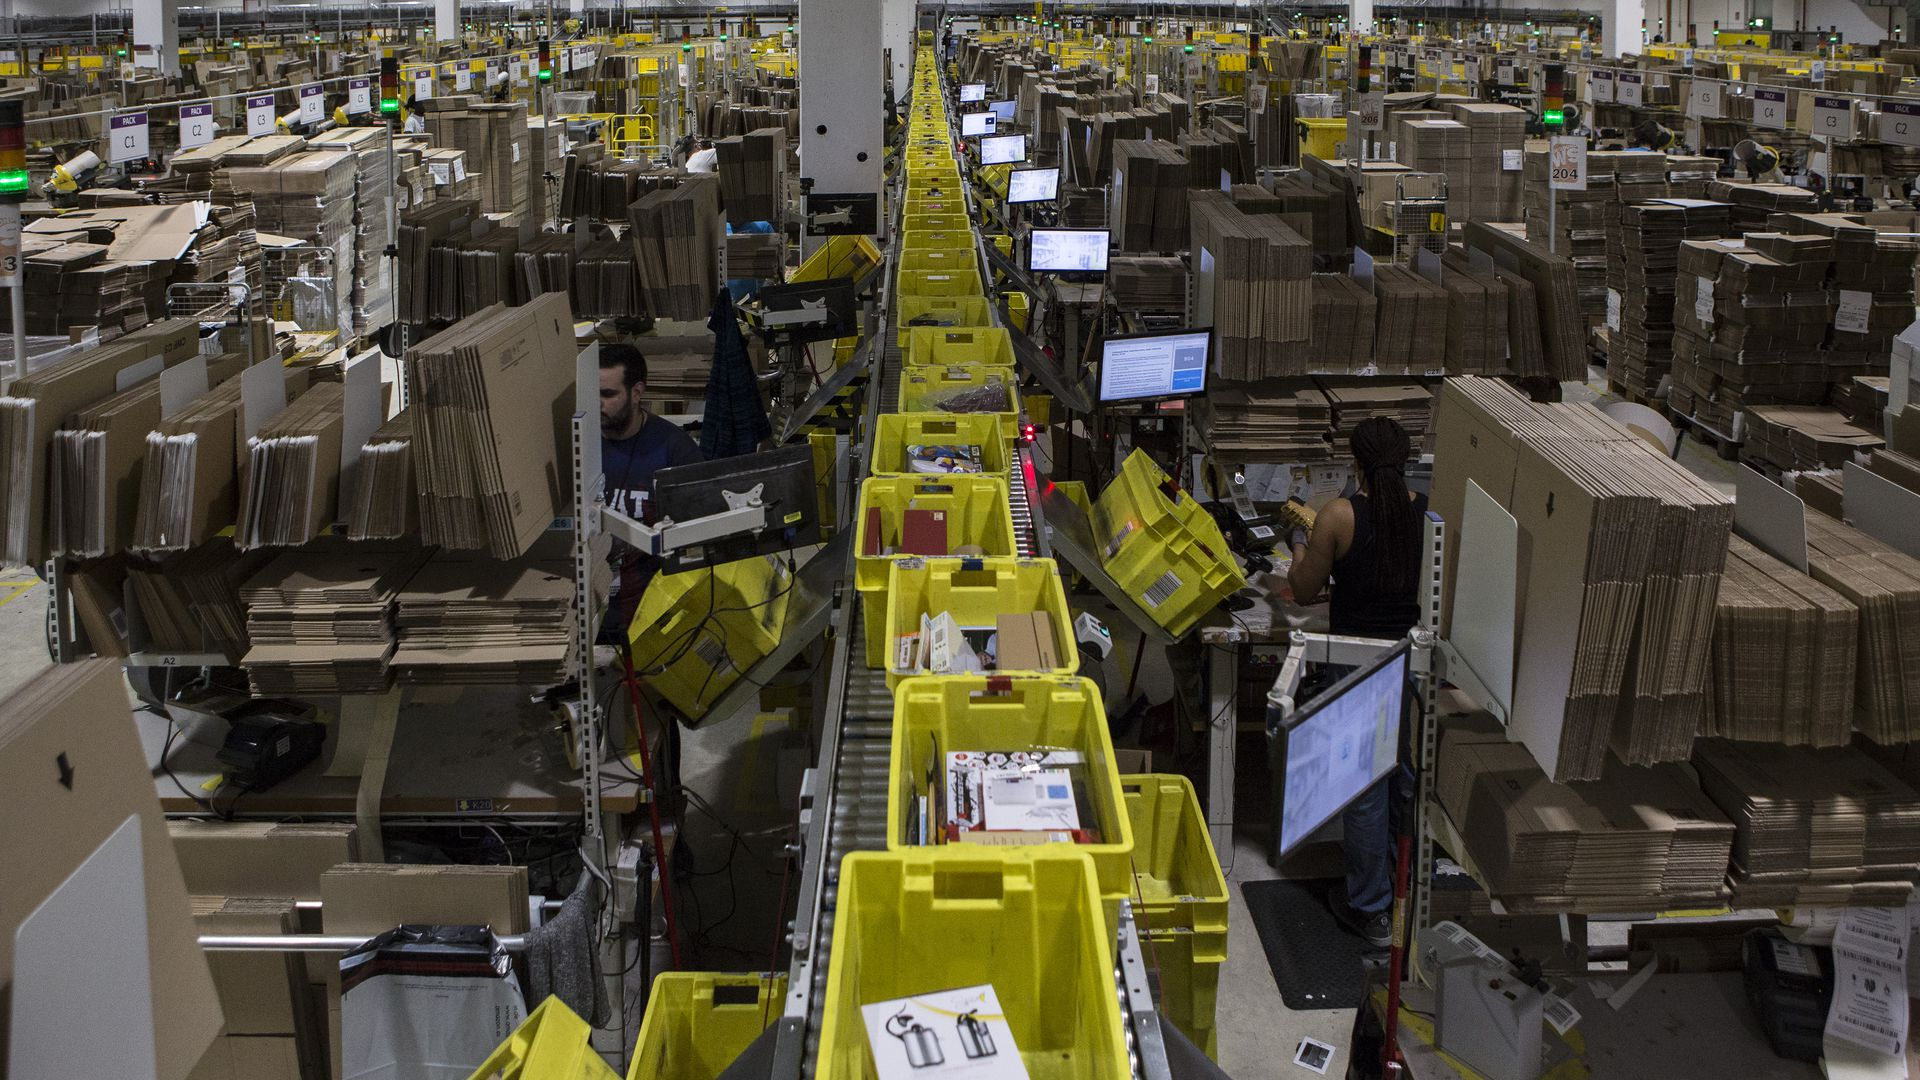 Aerial view of Amazon fulfillment center